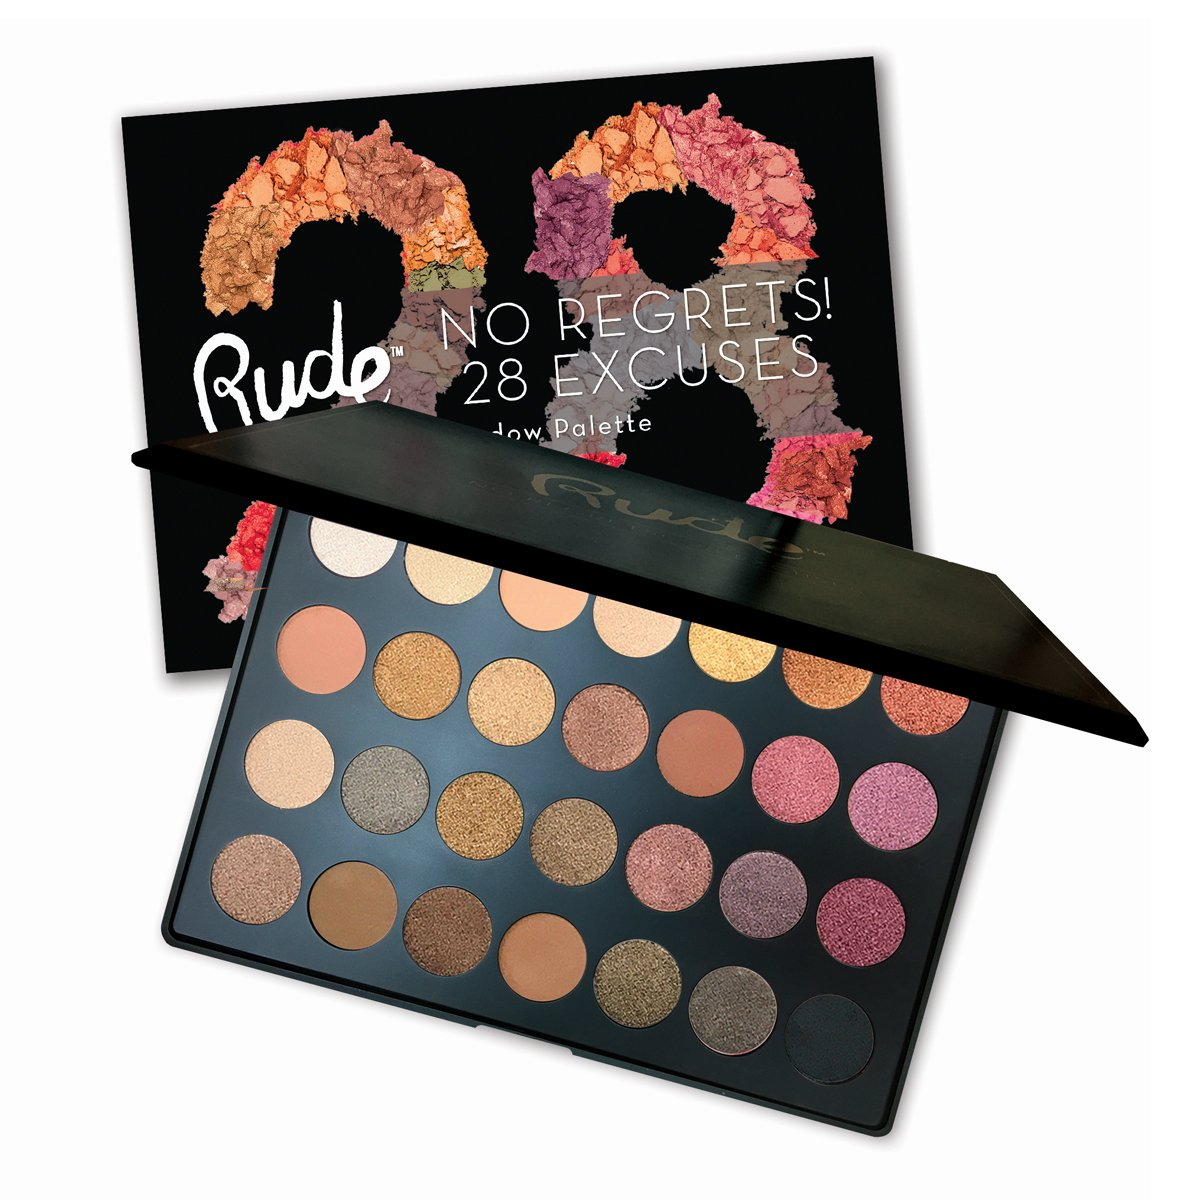 (6 Pack) RUDE No Regrets! 28 Excuses Eyeshadow Palette - Scorpio (並行輸入品) B0767K9QQR